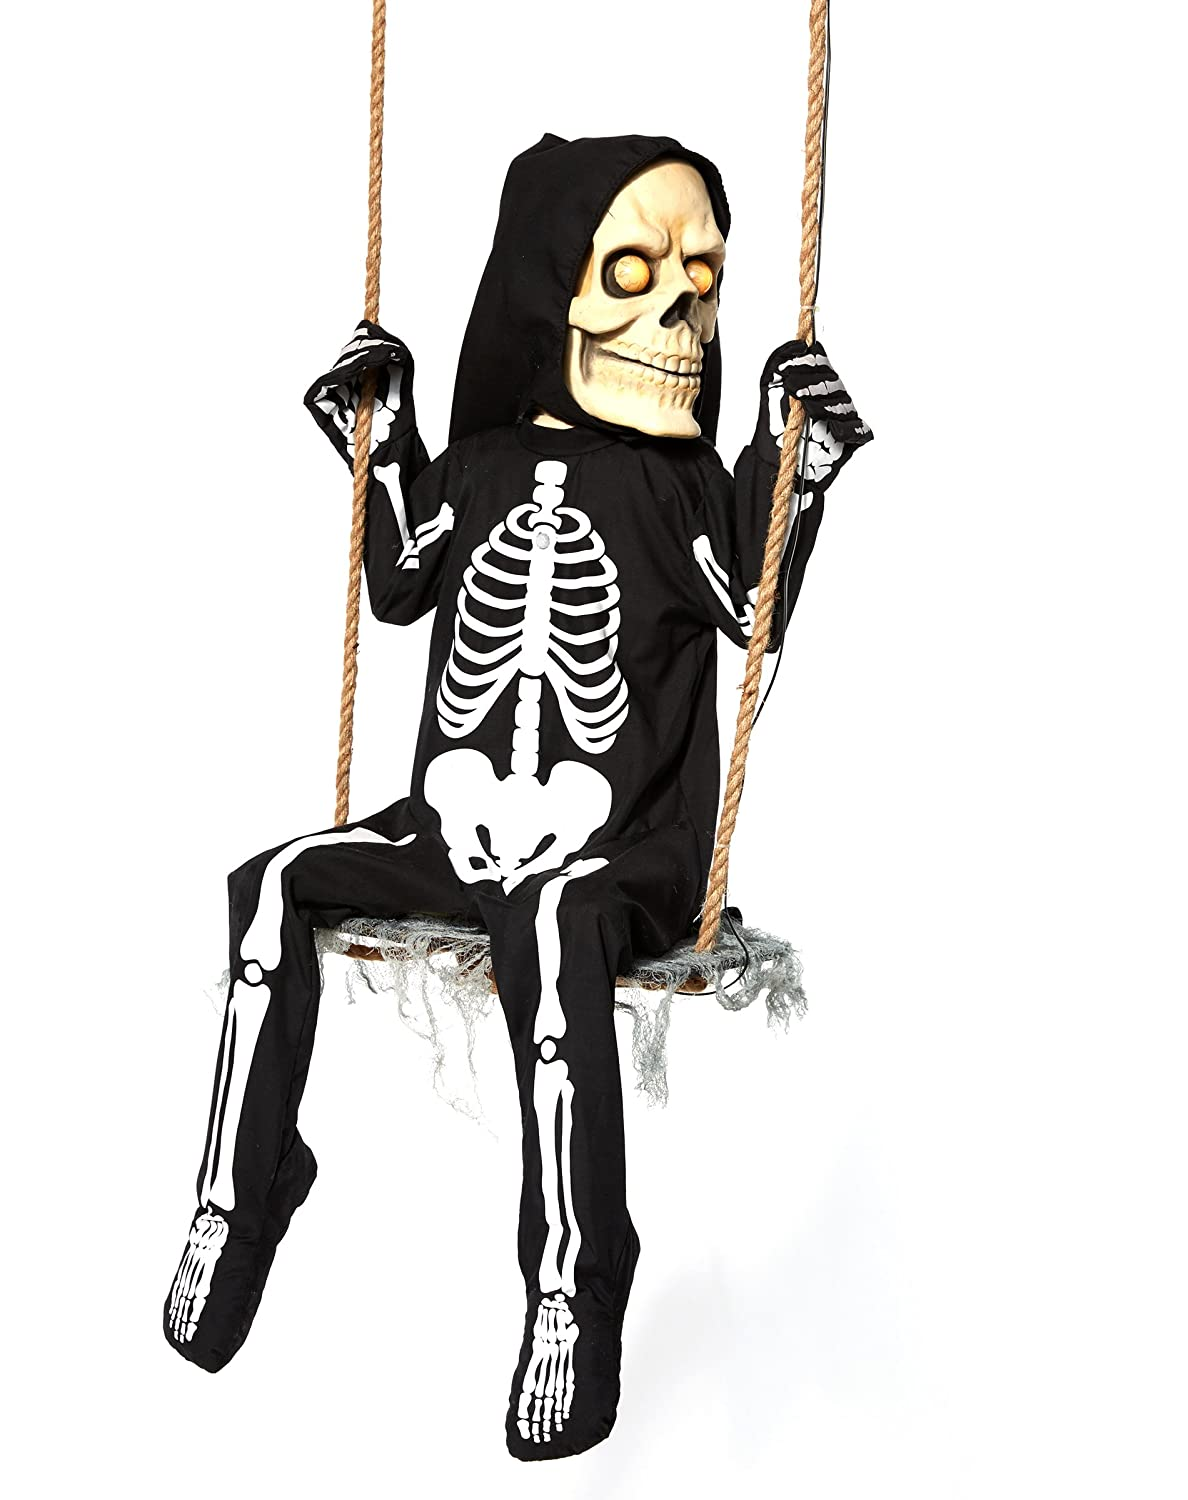 amazoncom spirit halloween 3 ft swinging skeleton boy animatronics decorations toys games - Spirit Halloween Decorations